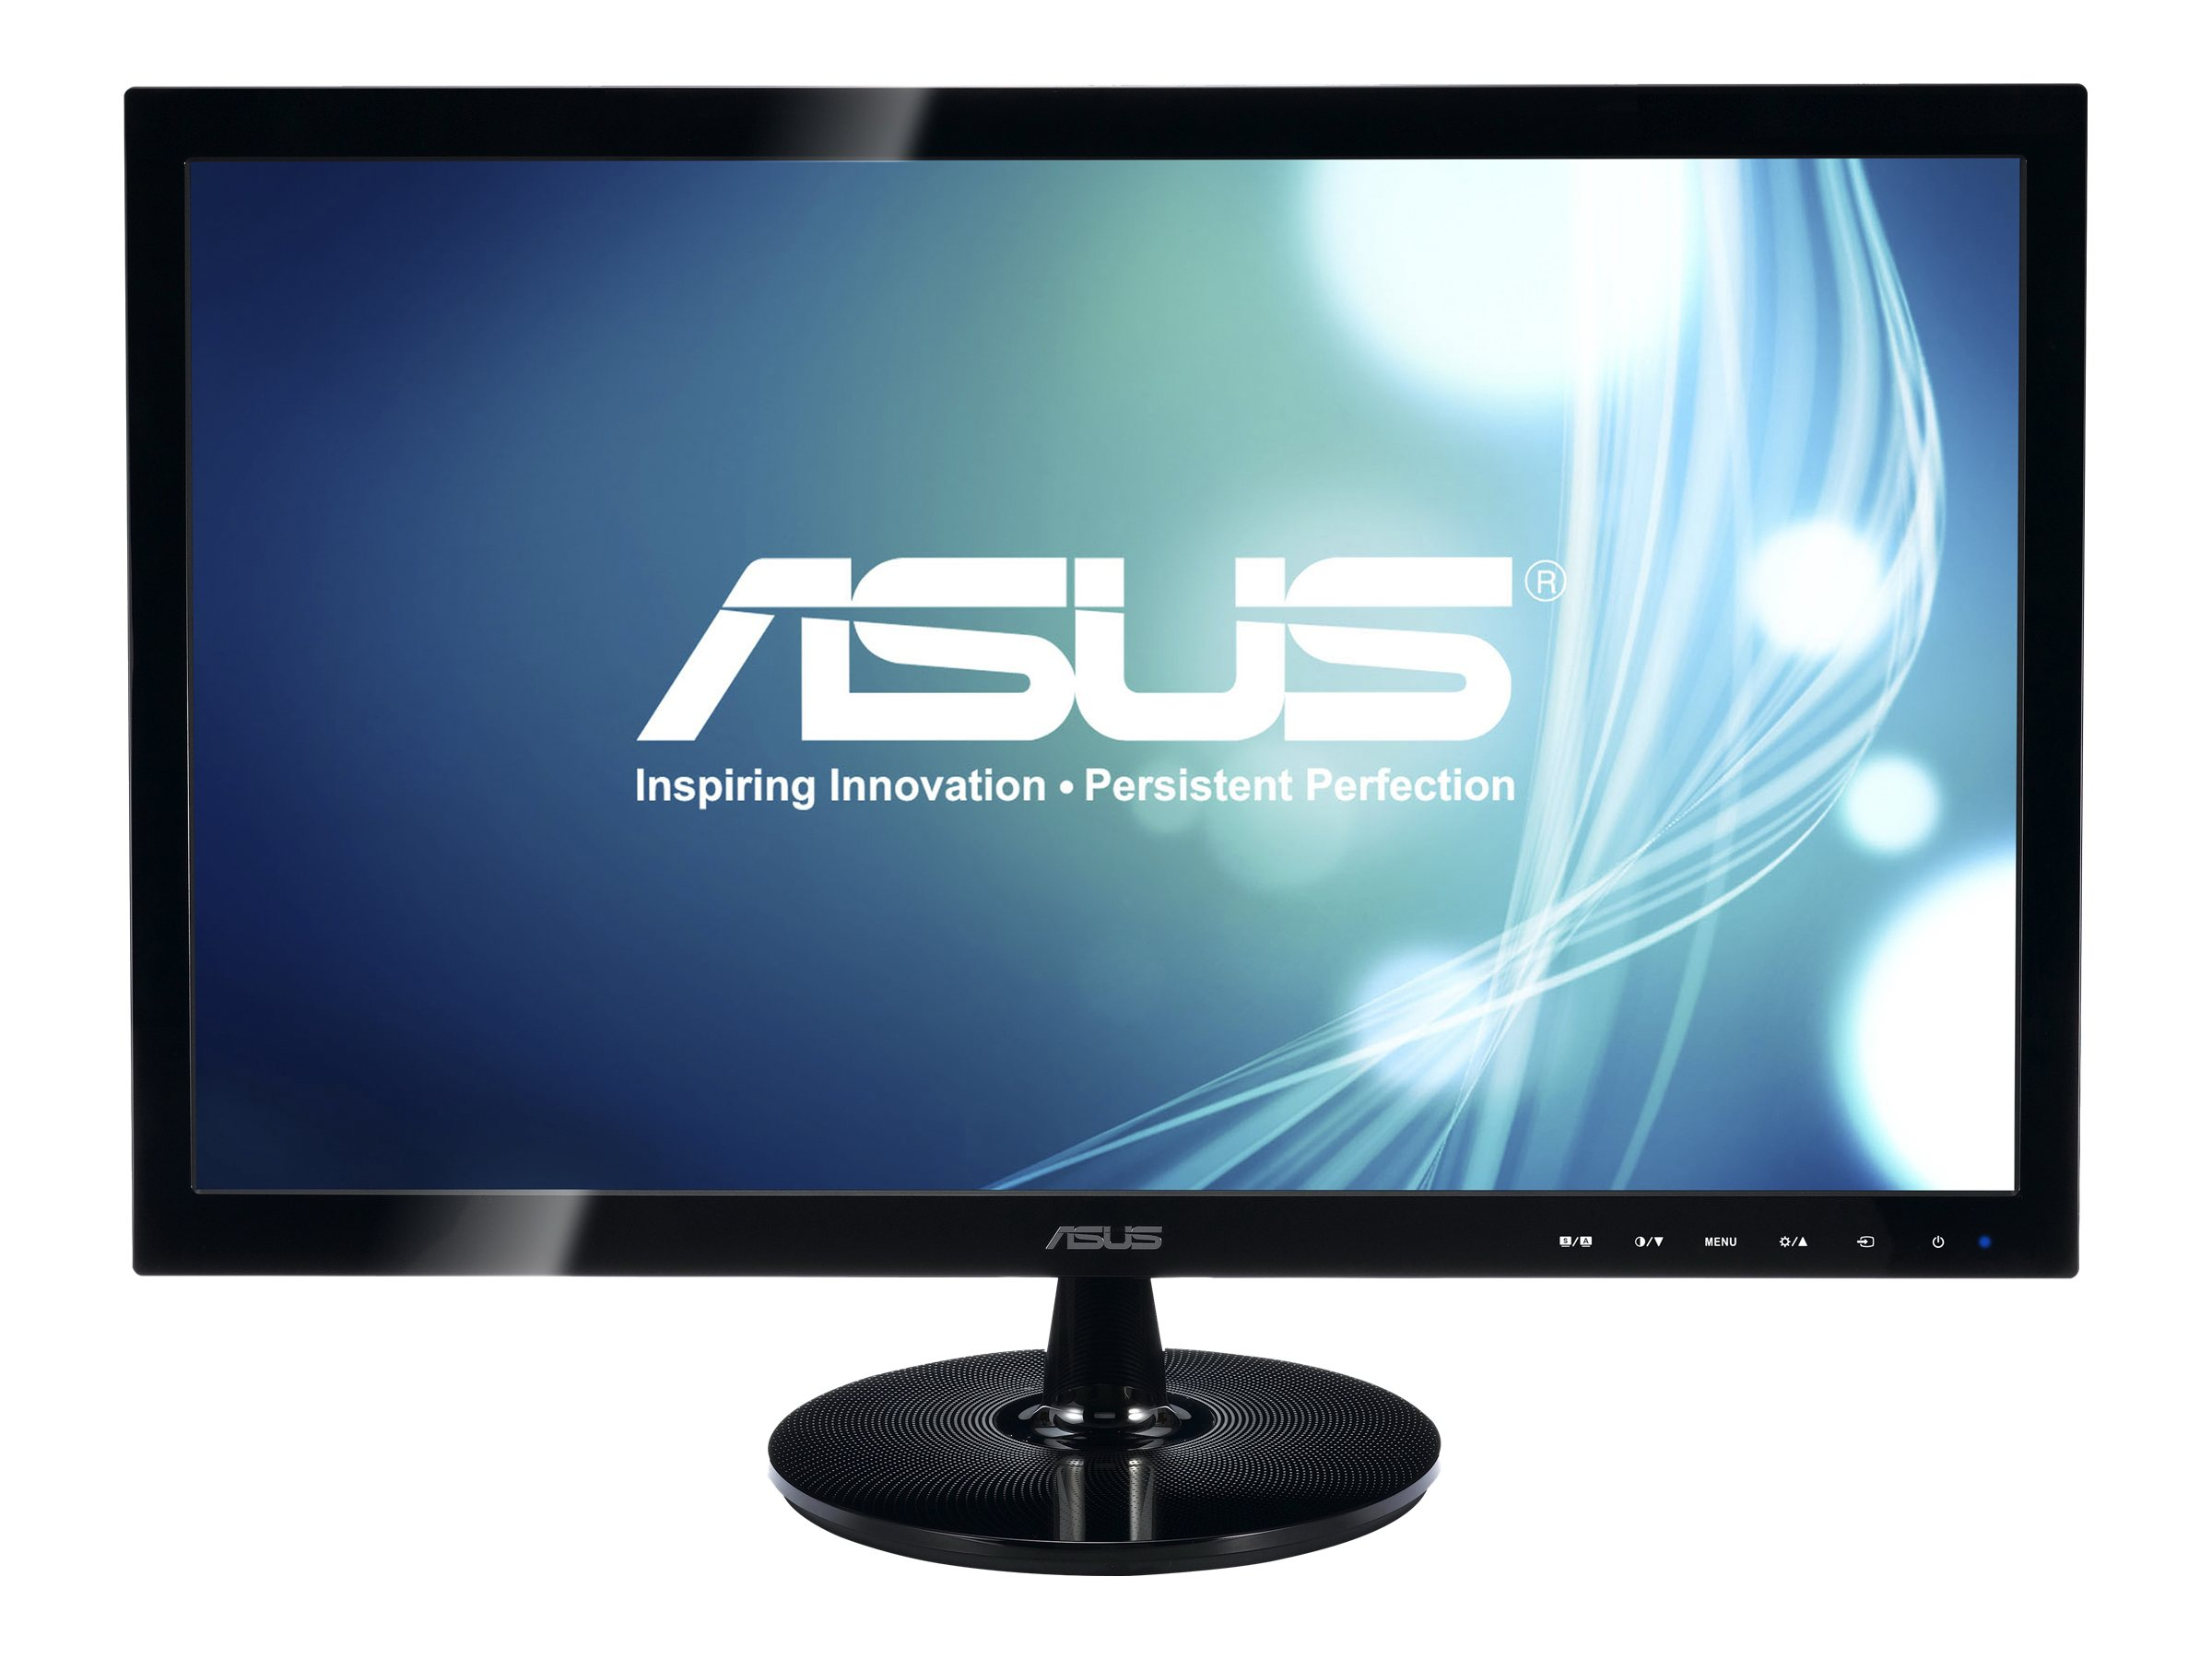 Asus 20 VS207D-P LED-LCD Monitor, Black